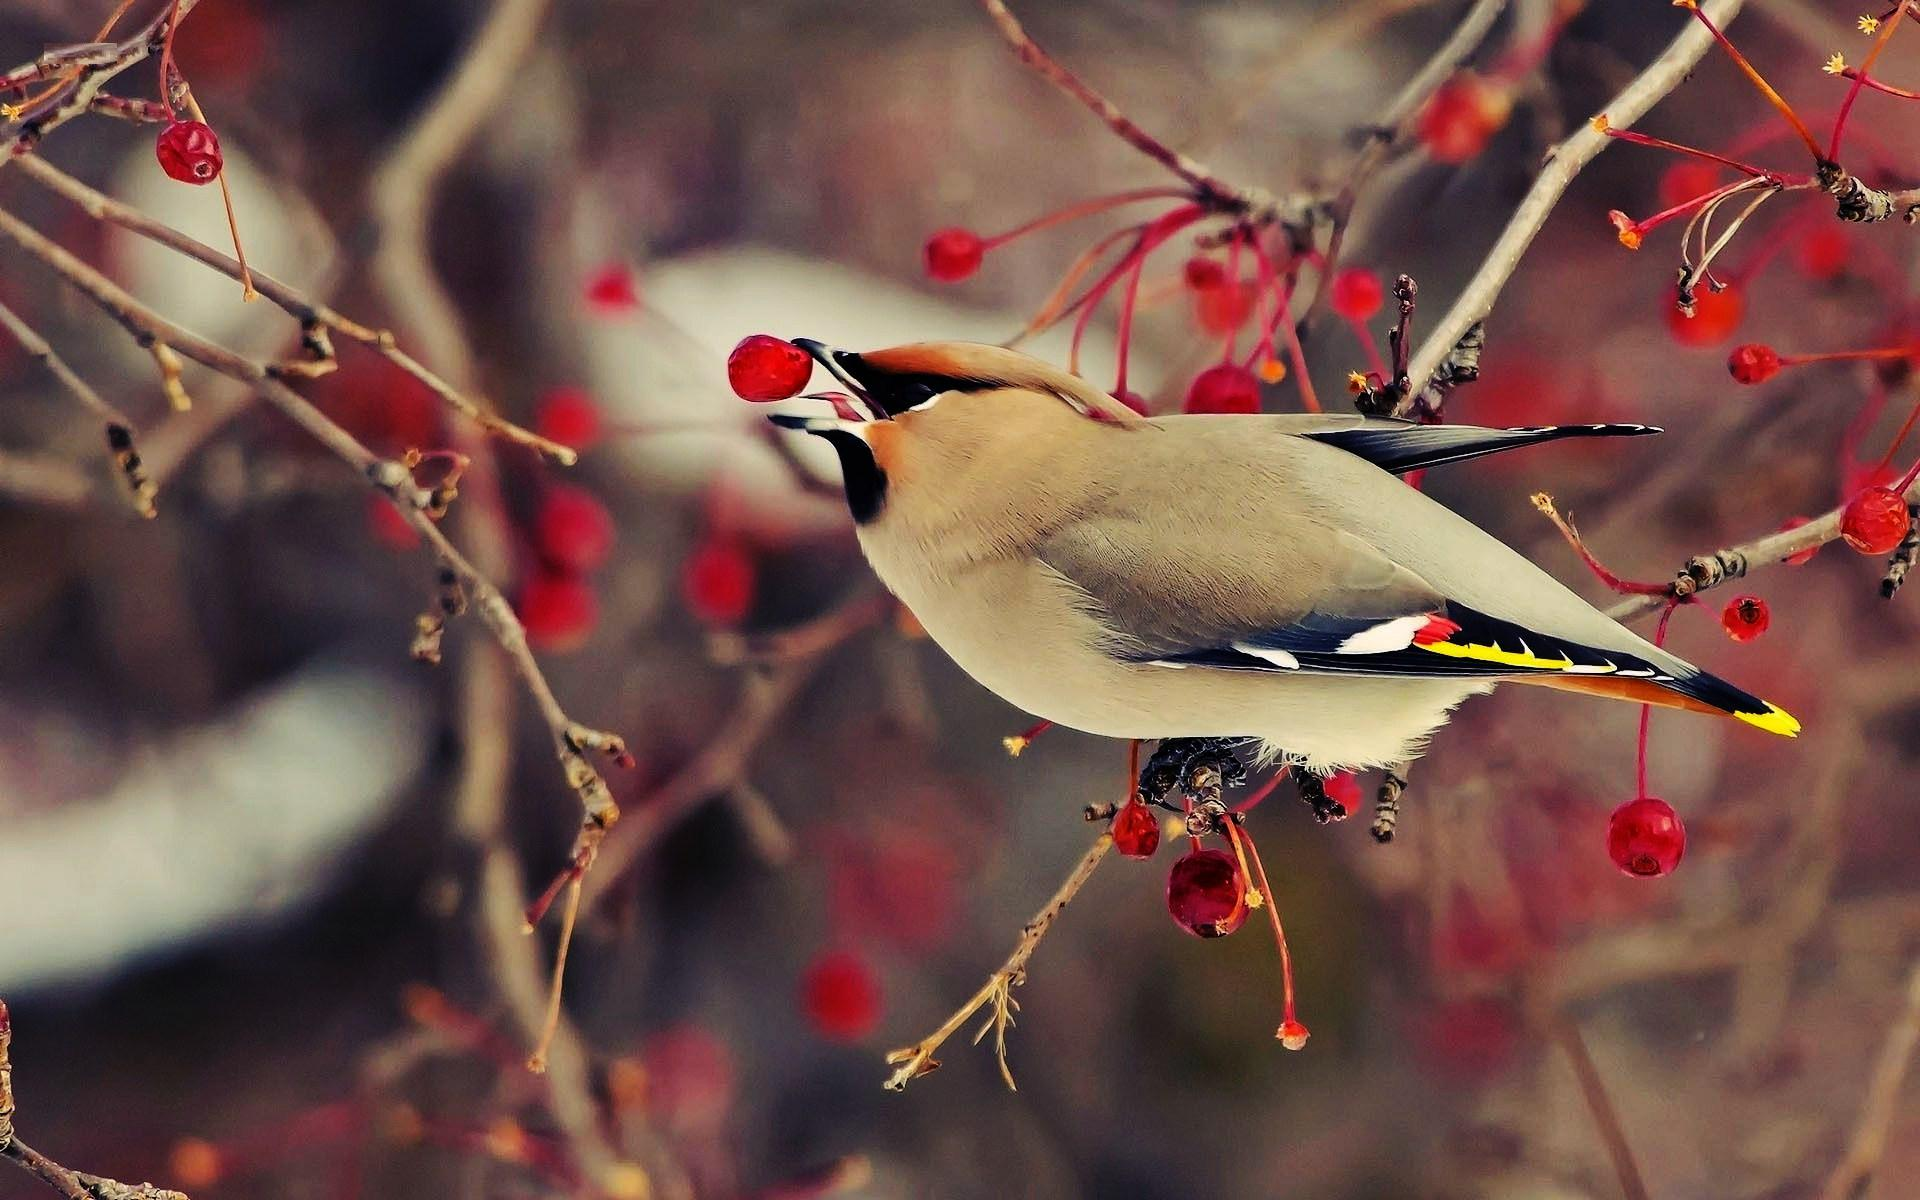 Cute Black And White Disney Desktop Wallpapers Hd Bohemian Waxwing Bird Wallpaper Download Free 139775